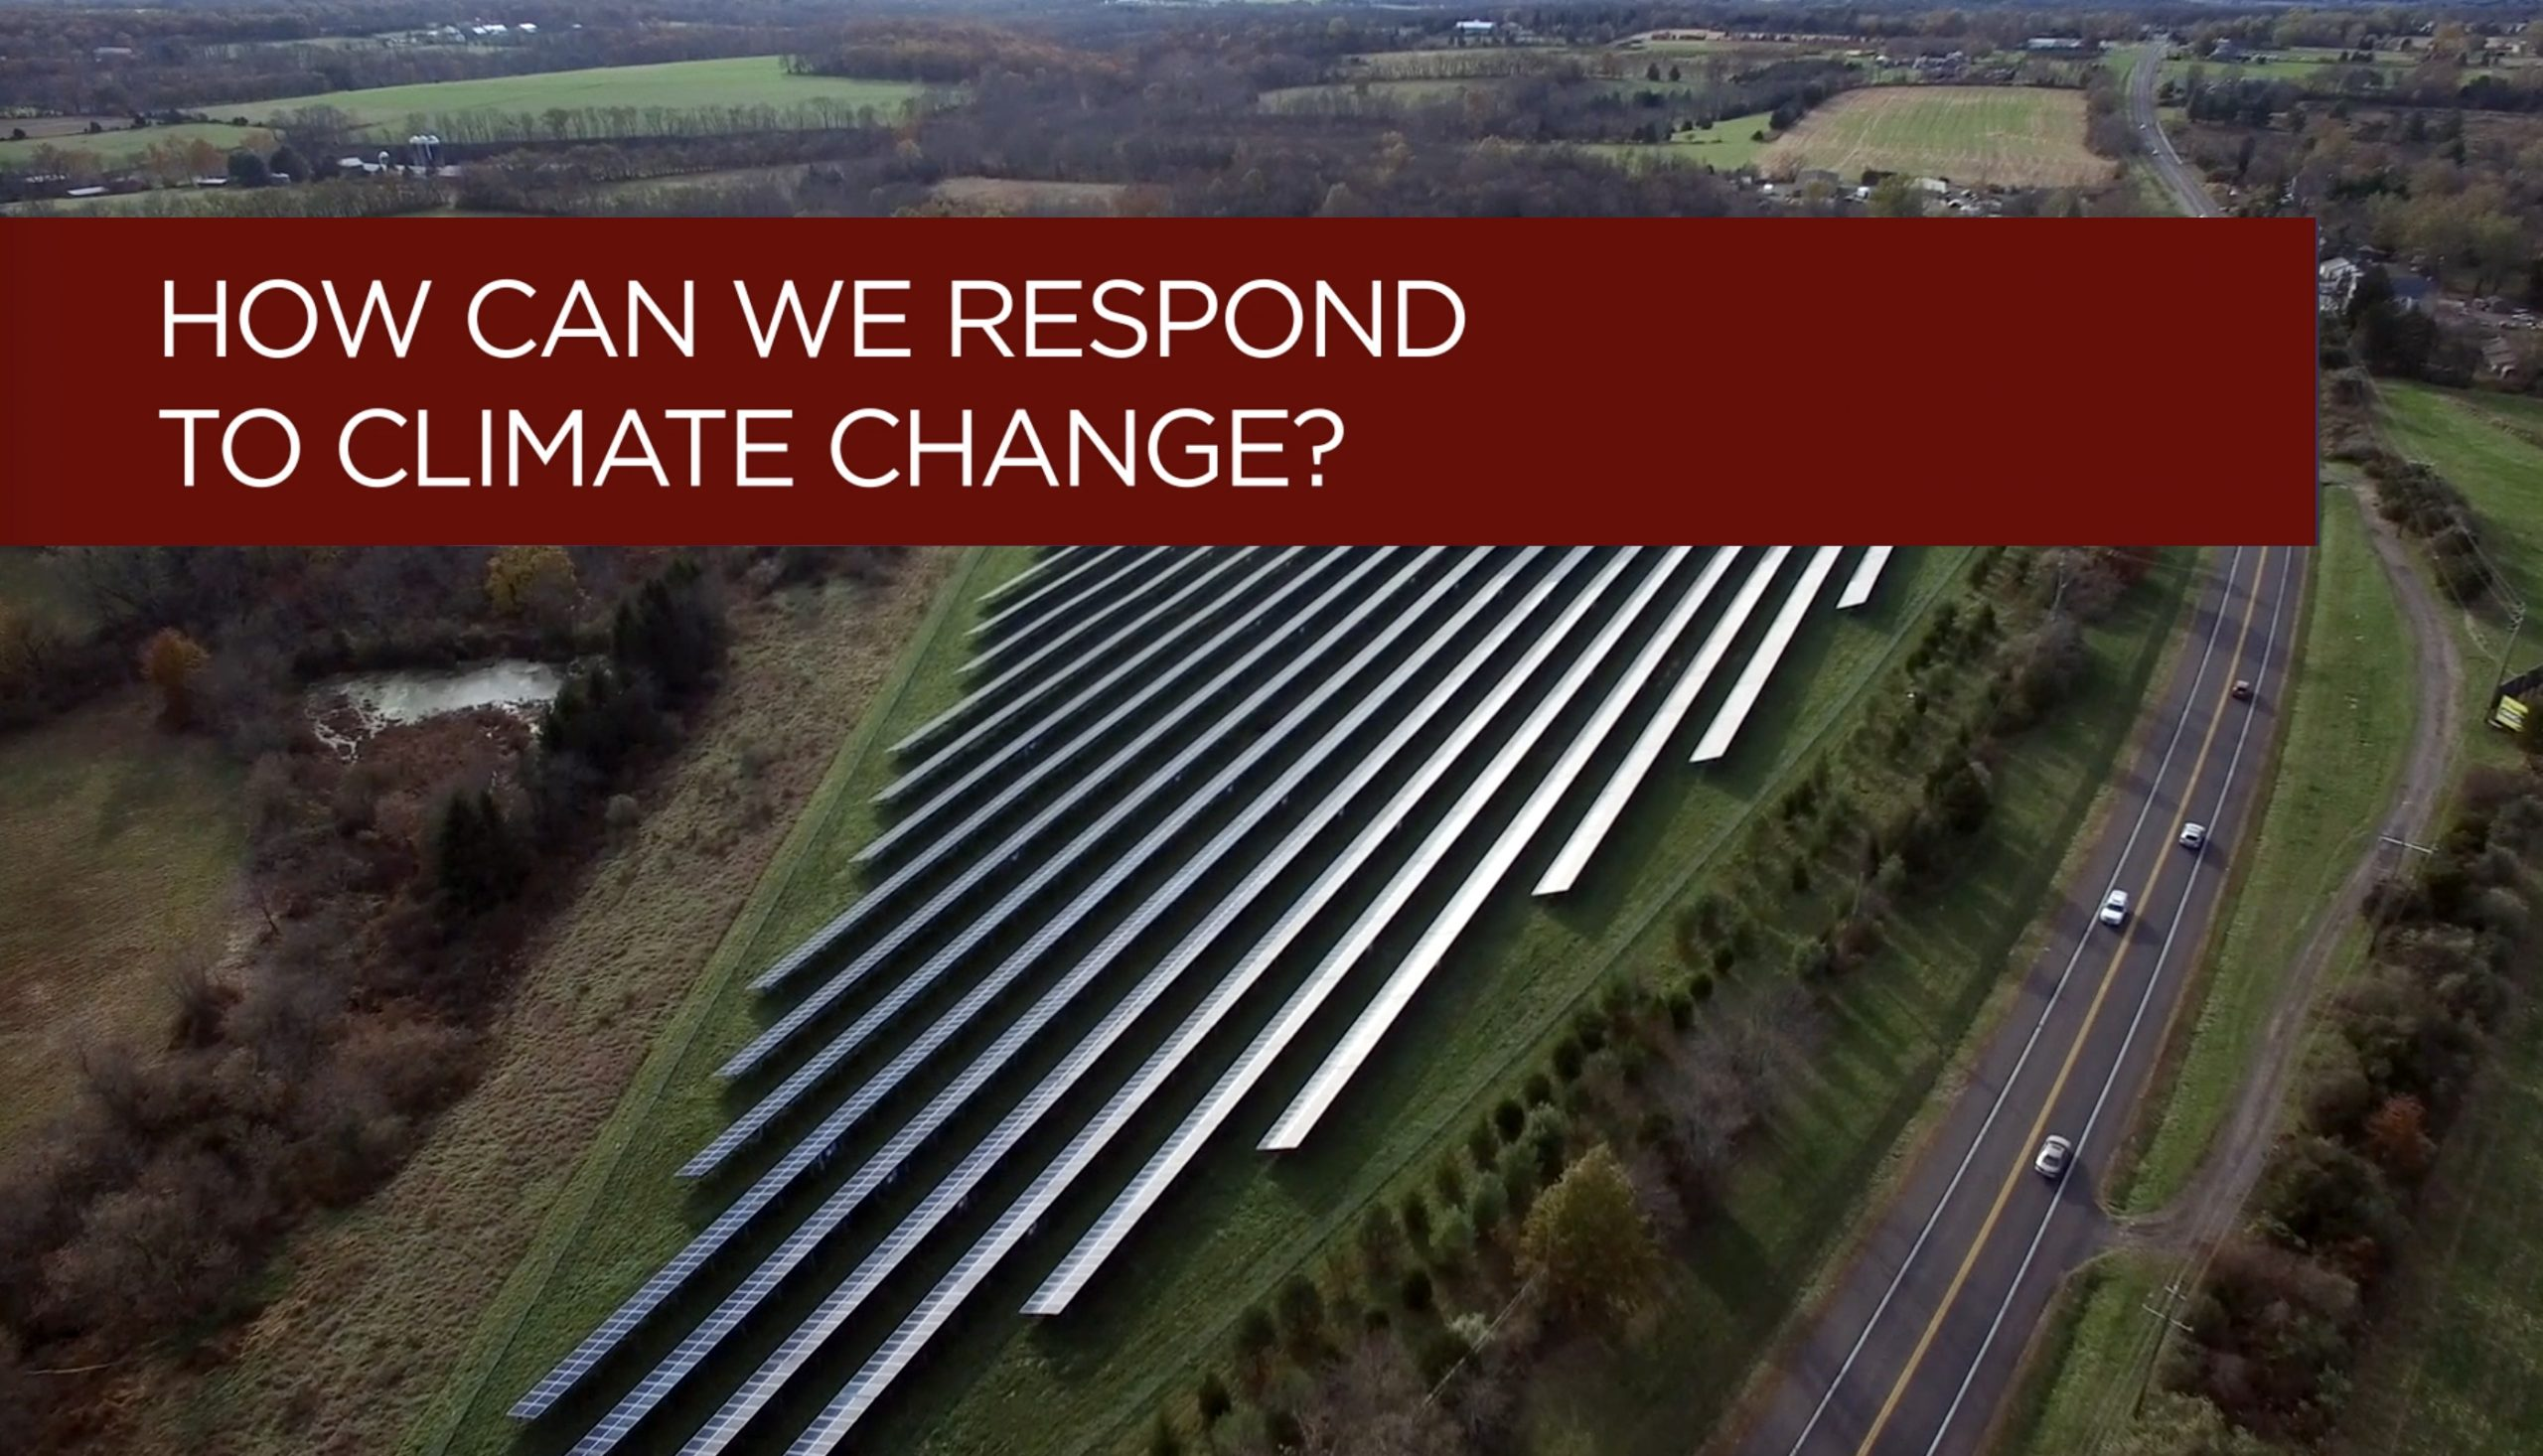 How Can We Respond to Climate Change